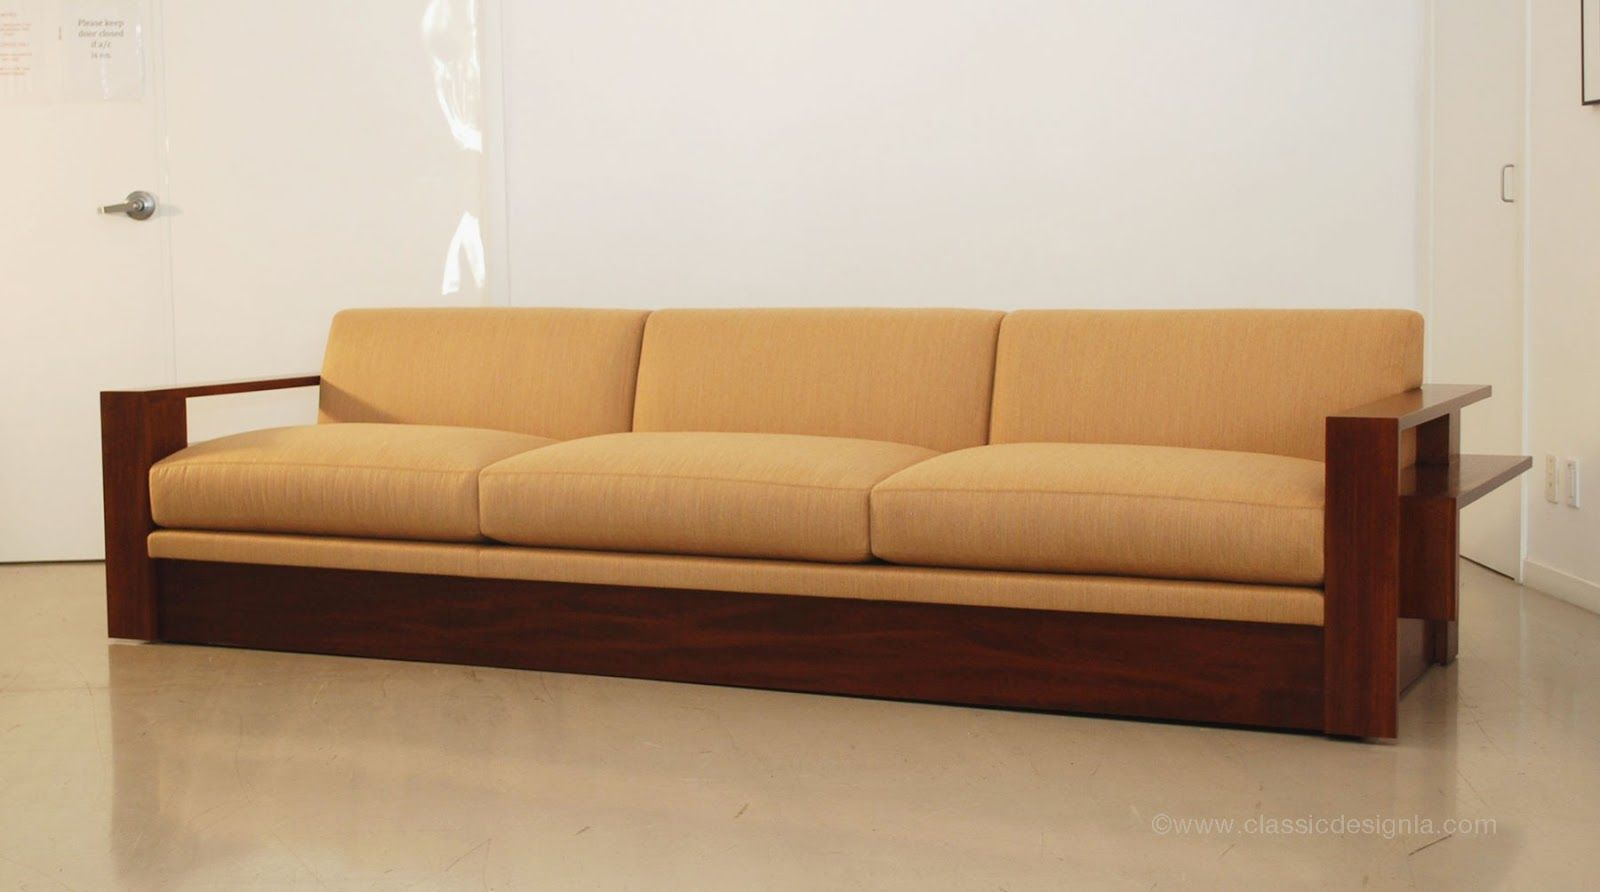 Classic design is a custom upholstery furniture maker for Classic design furniture